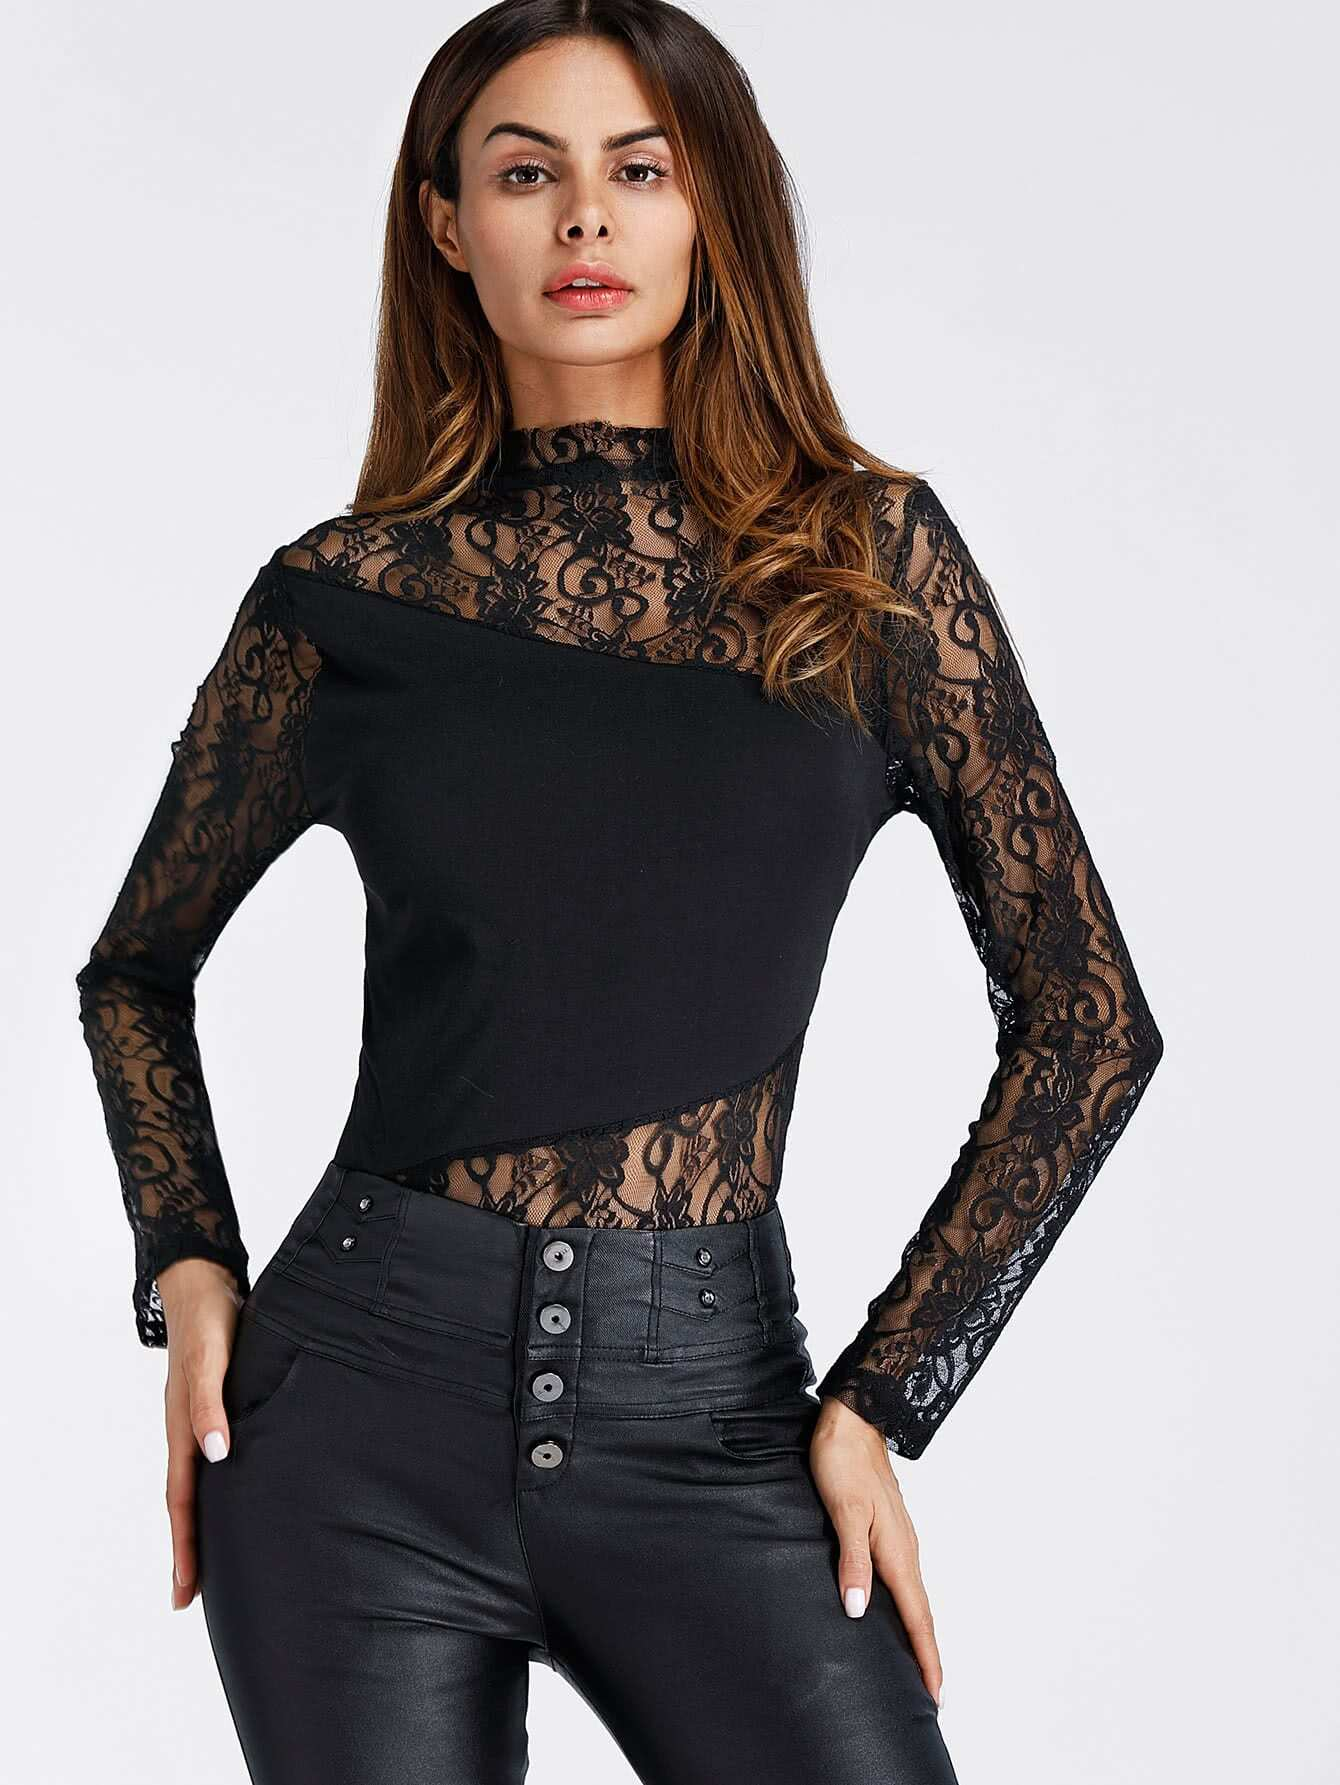 Embroidered Lace Panel Bodysuit embroidered lace panel bodysuit